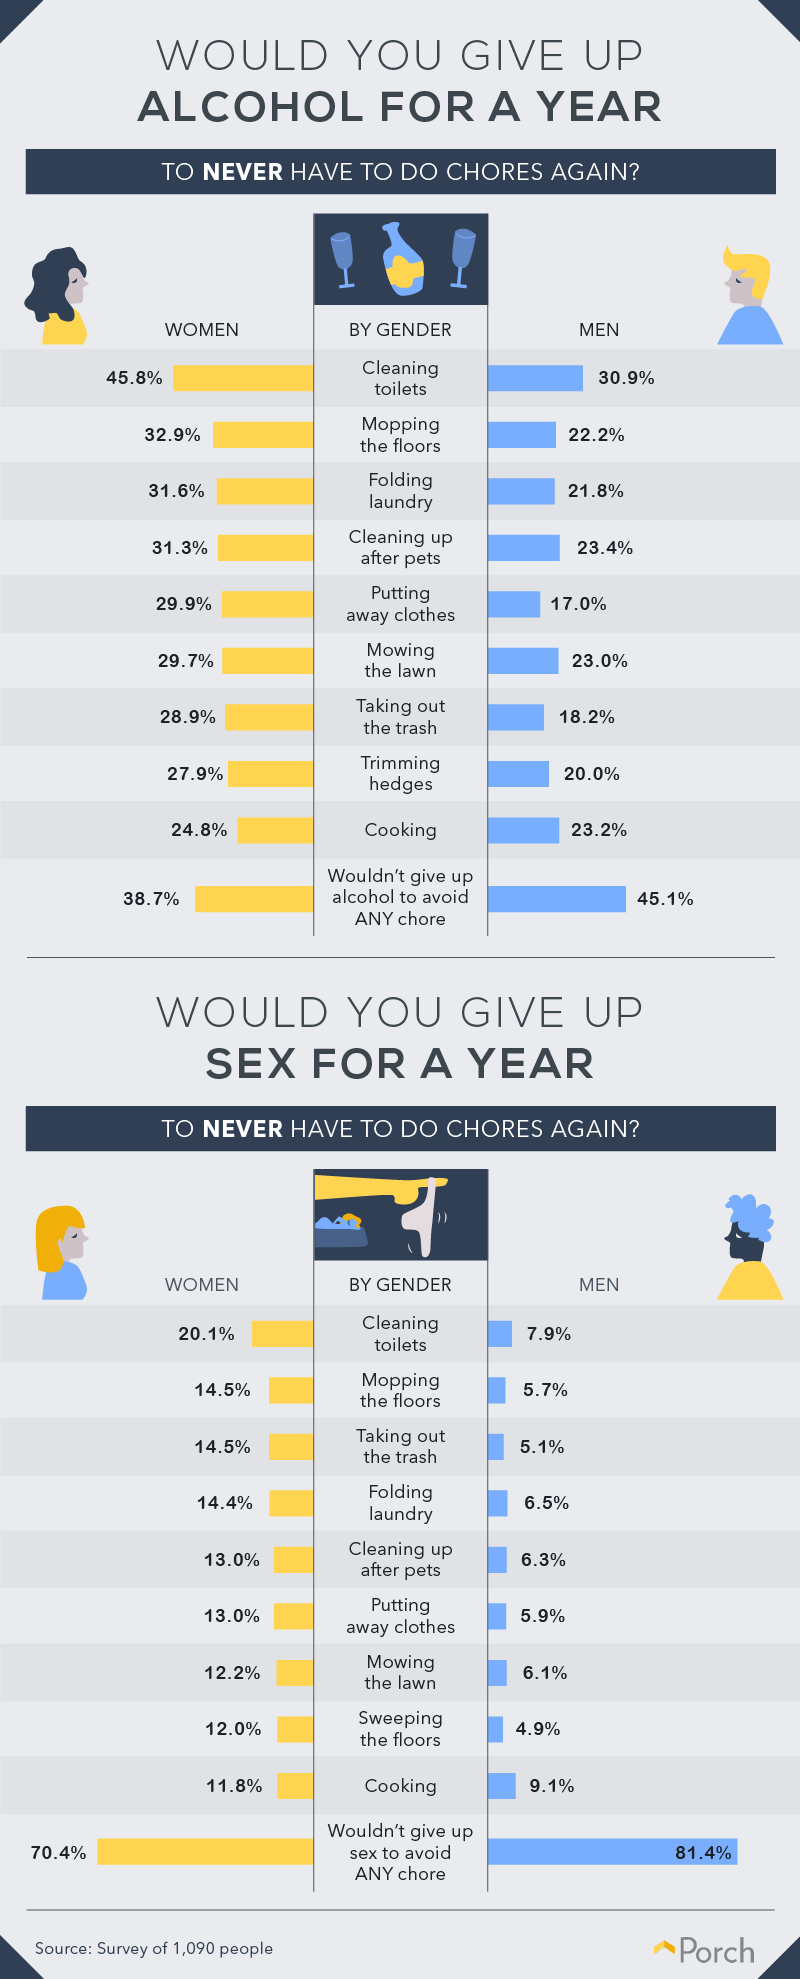 Willingness to give up sex or alcohol for a year to skip a chore forever